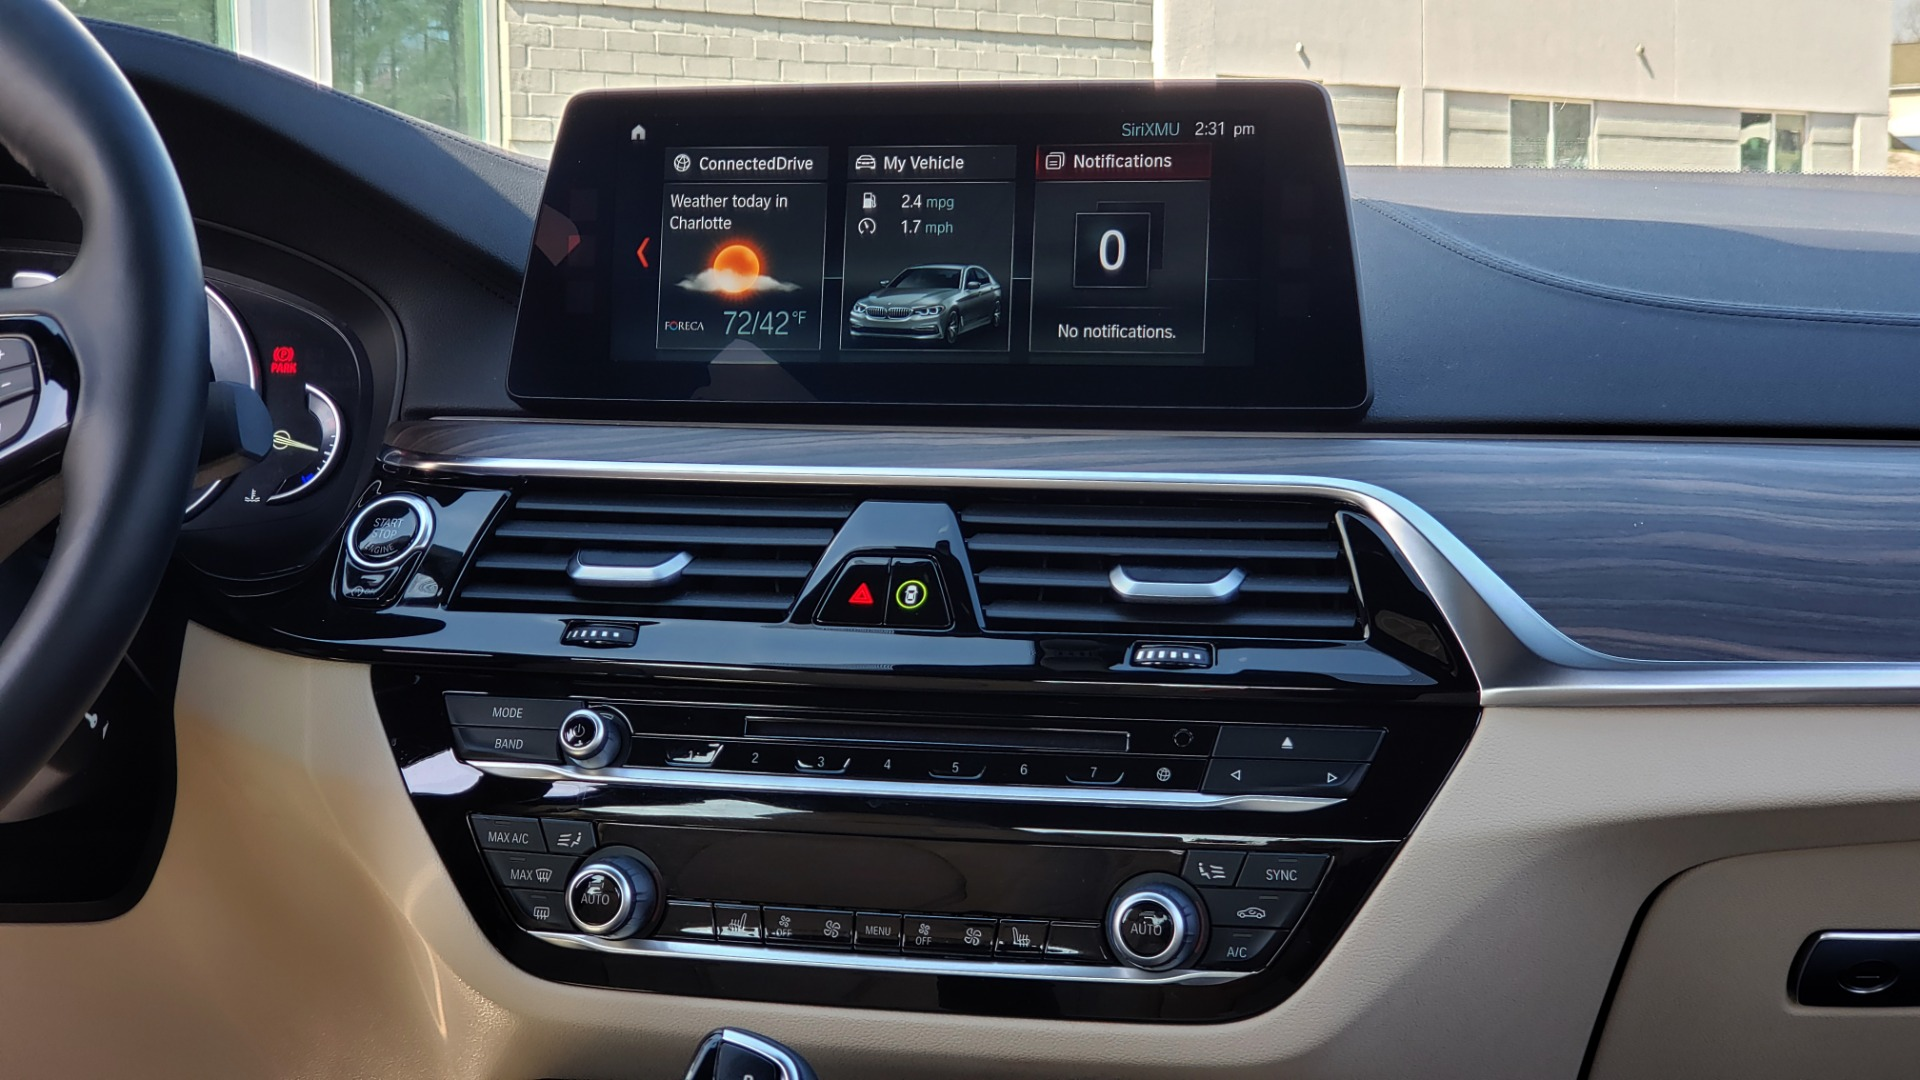 Used 2018 BMW 5 SERIES 540IXDRIVE PREMIUM / DRVR ASST PLUS / LUX PKG / APPLE CARPLAY for sale Sold at Formula Imports in Charlotte NC 28227 71